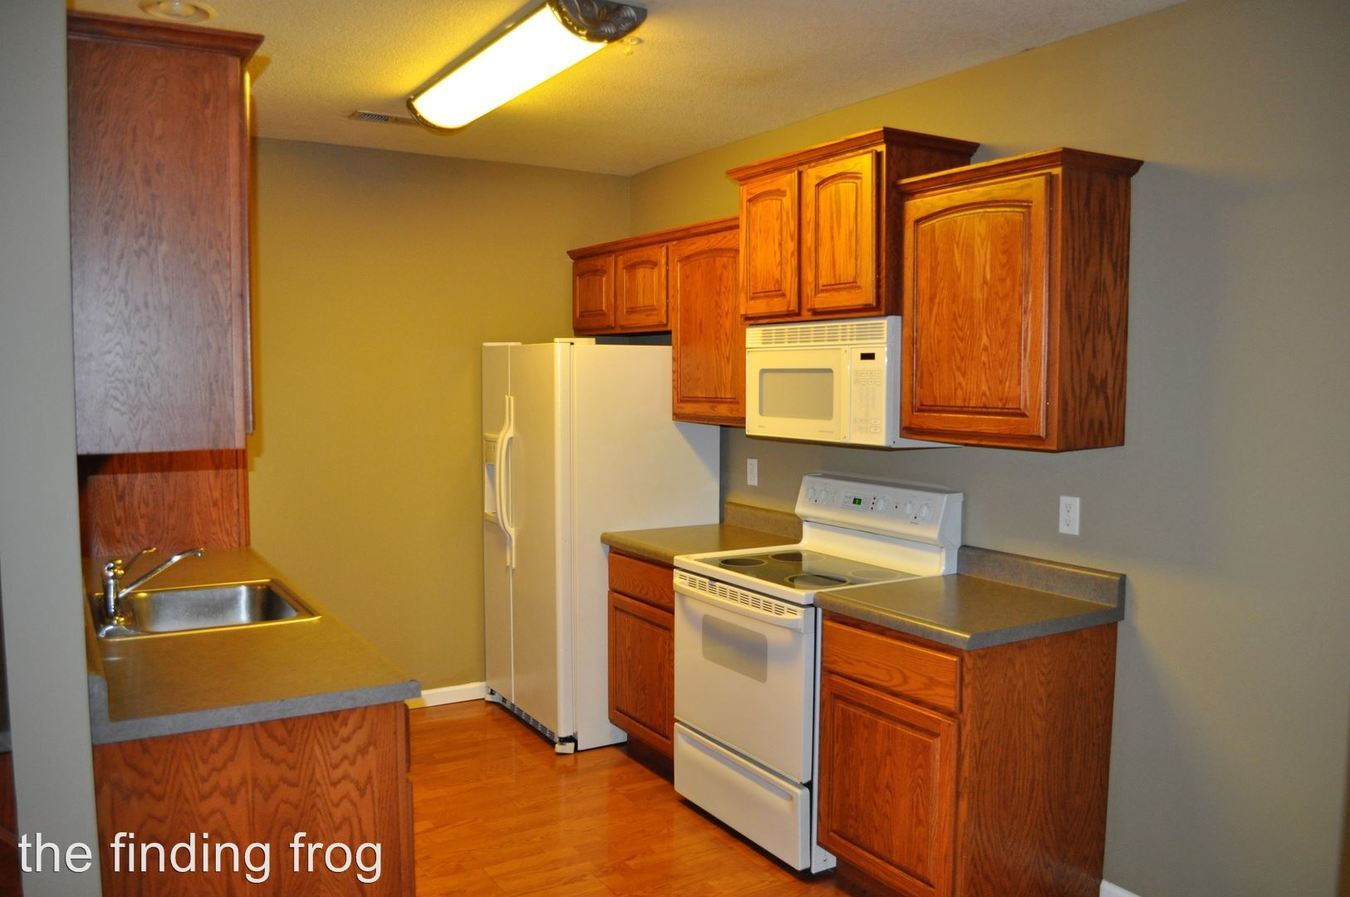 3 Bedrooms 2 Bathrooms Apartment for rent at 1403 Wilson Avenue in Columbia, MO